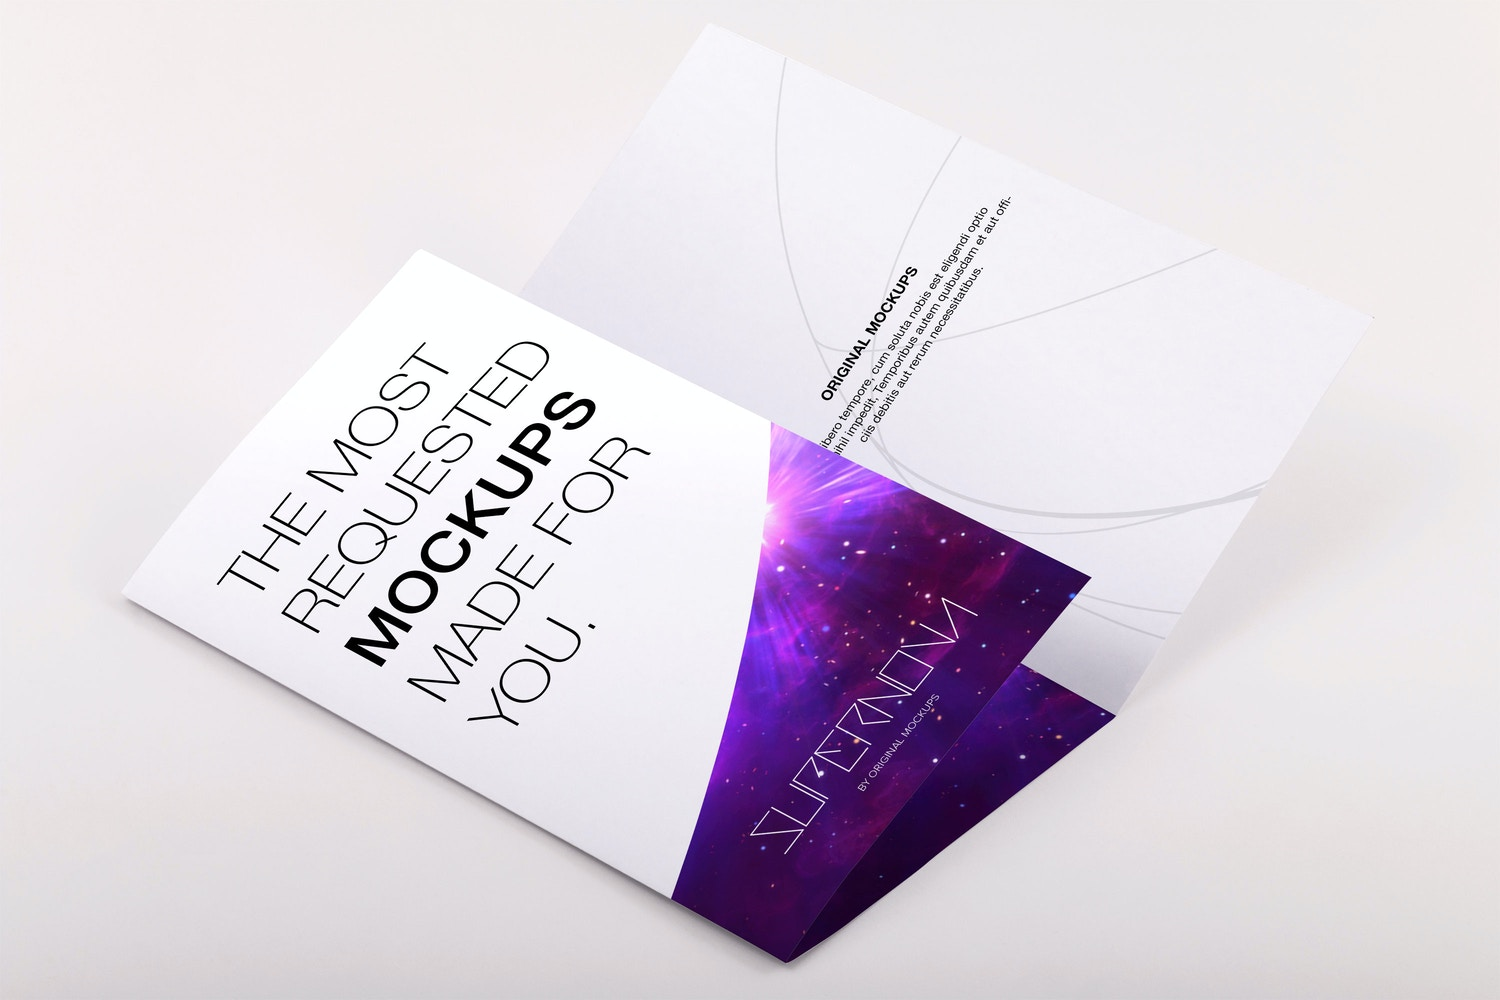 Legal Trifold Brochure PSD Mockup 02 by Original Mockups on Original Mockups